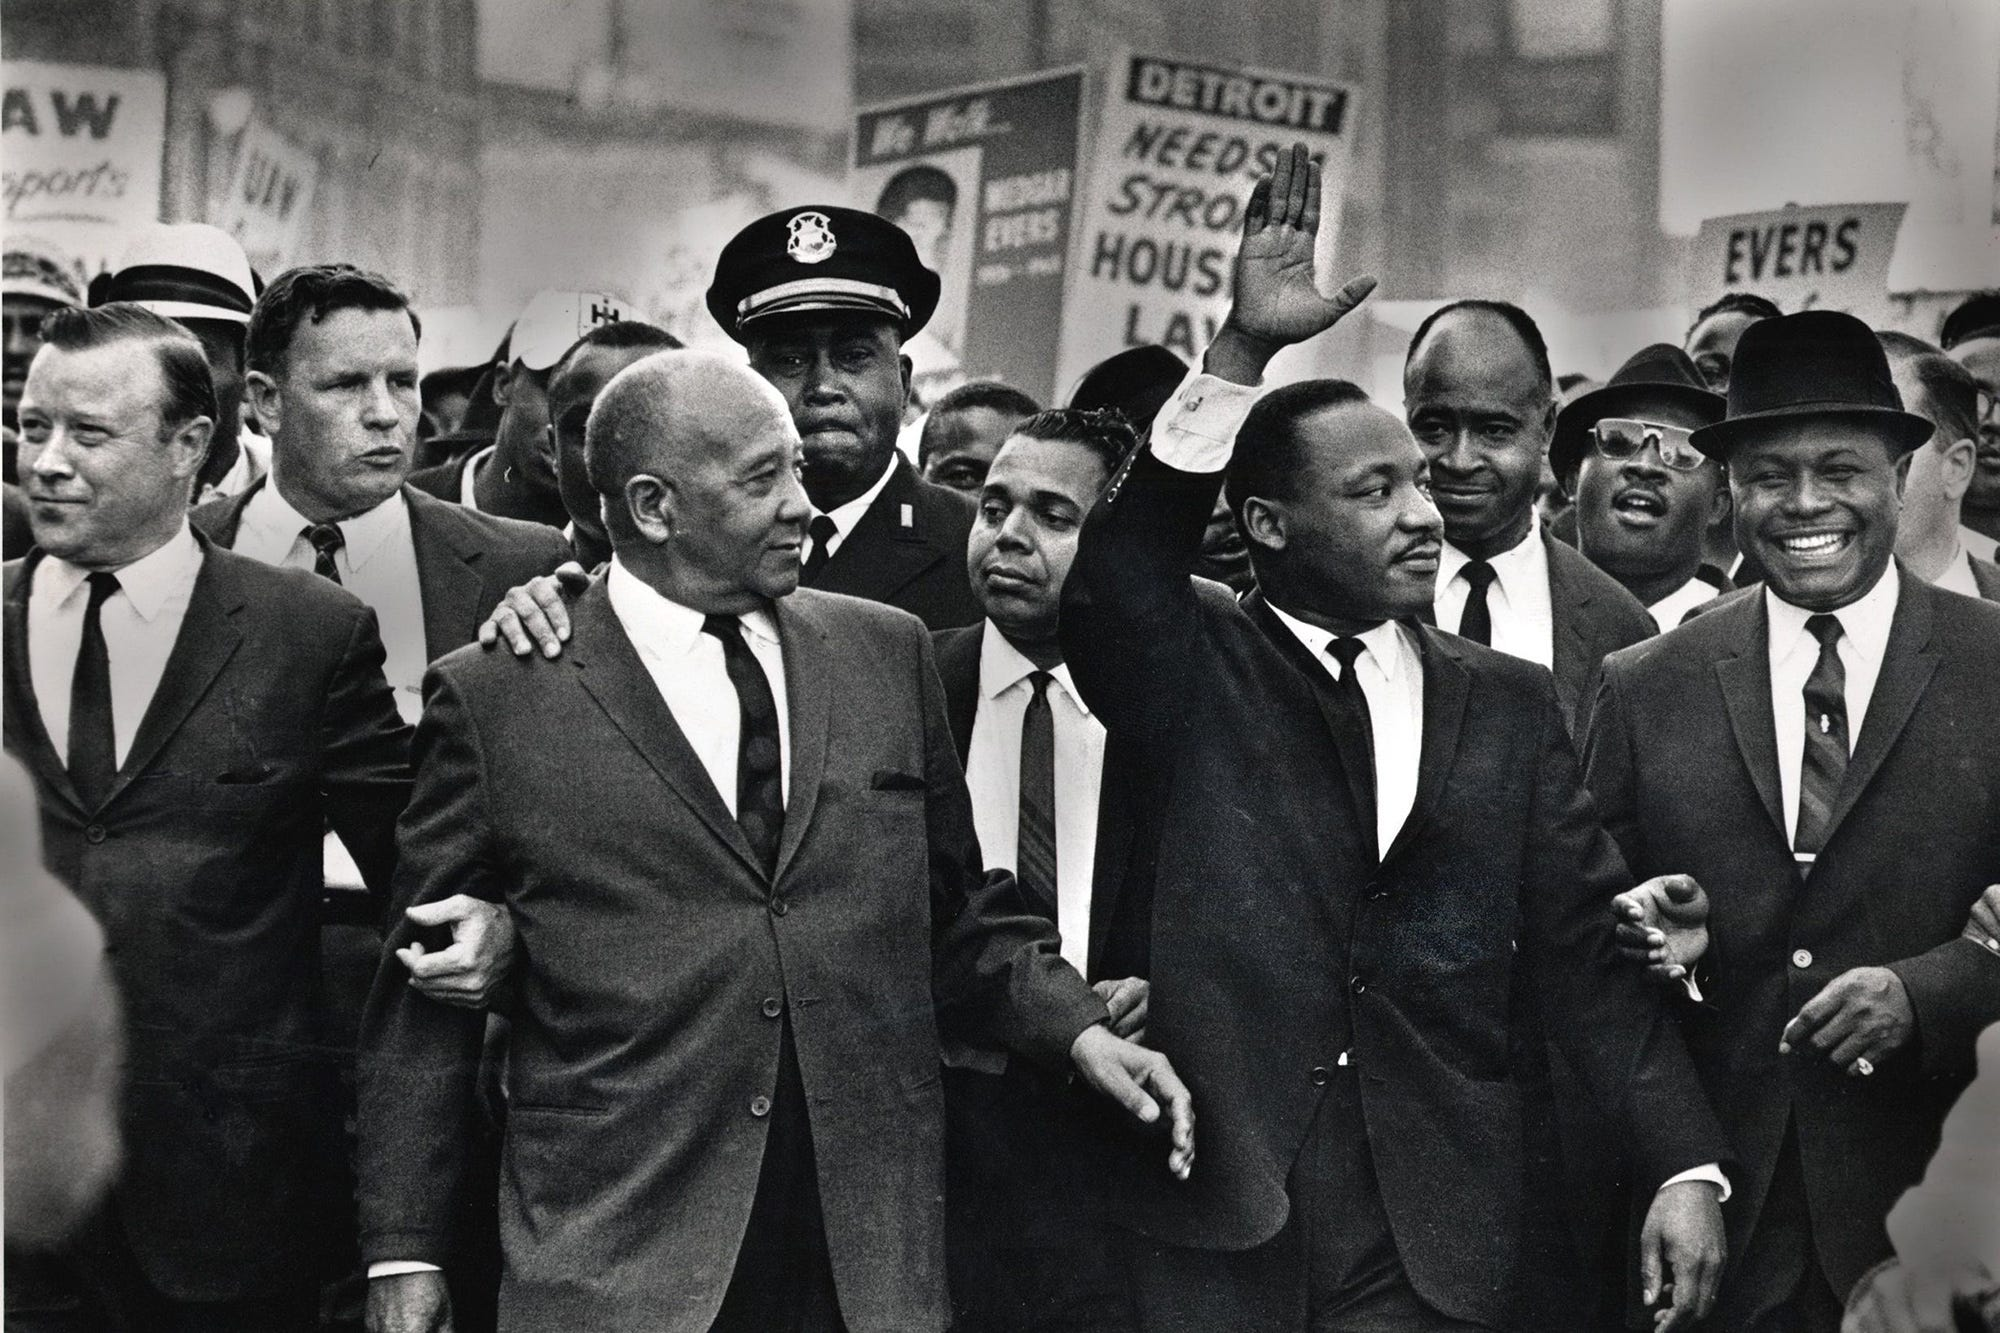 Fact Check: Most Civil Rights-era Images Weren't Made In Color